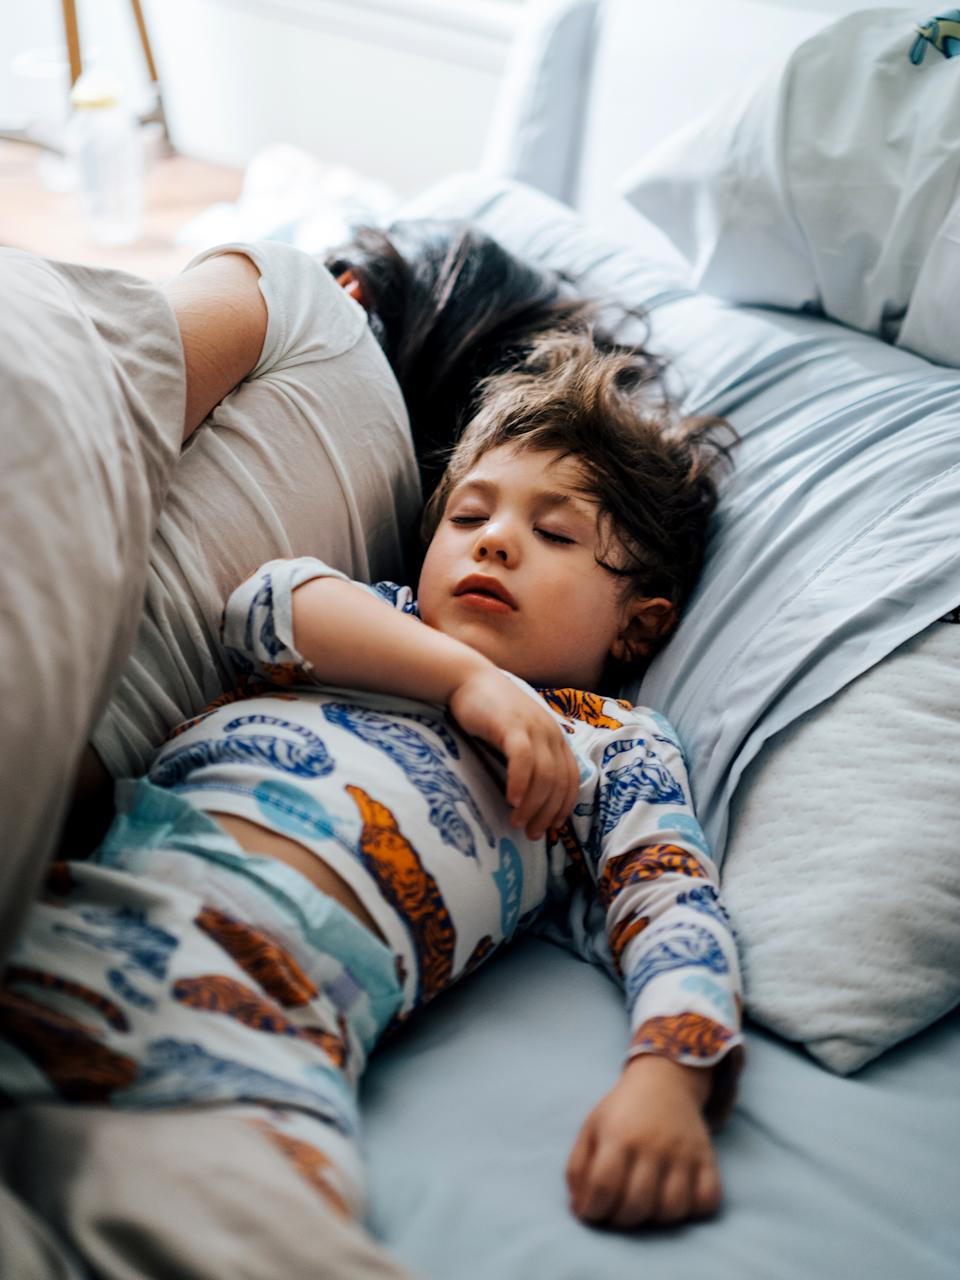 If co-sleeping works for you, great, says an expert. But if it's making you sleep deprived and resentful, it may be time to take a hard look at your kid's bedtime routine. (Photo: Getty Images)